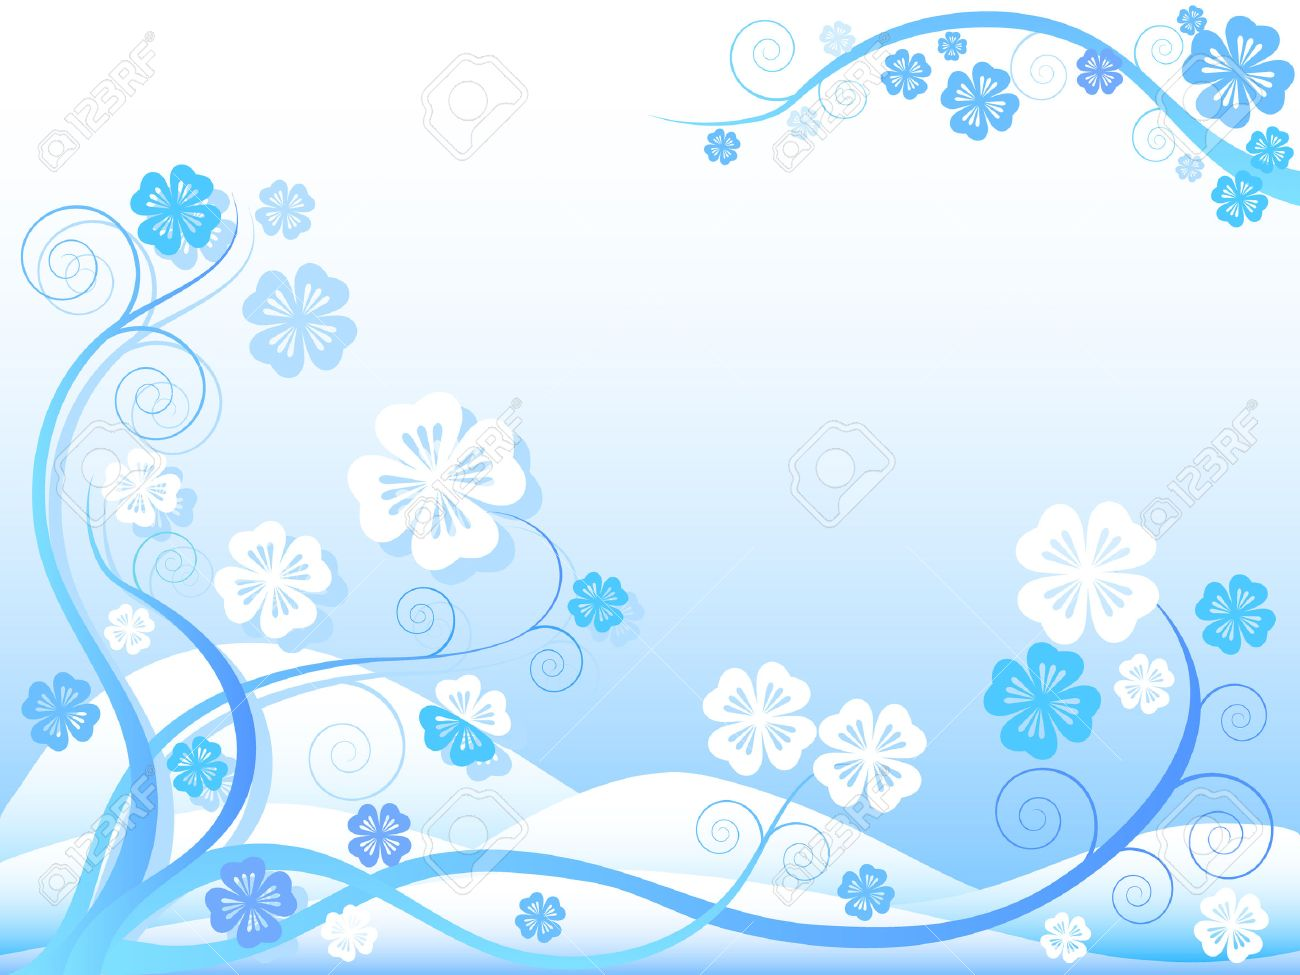 Abstract with floral ornaments on blue and white background Stock Vector - 5570738